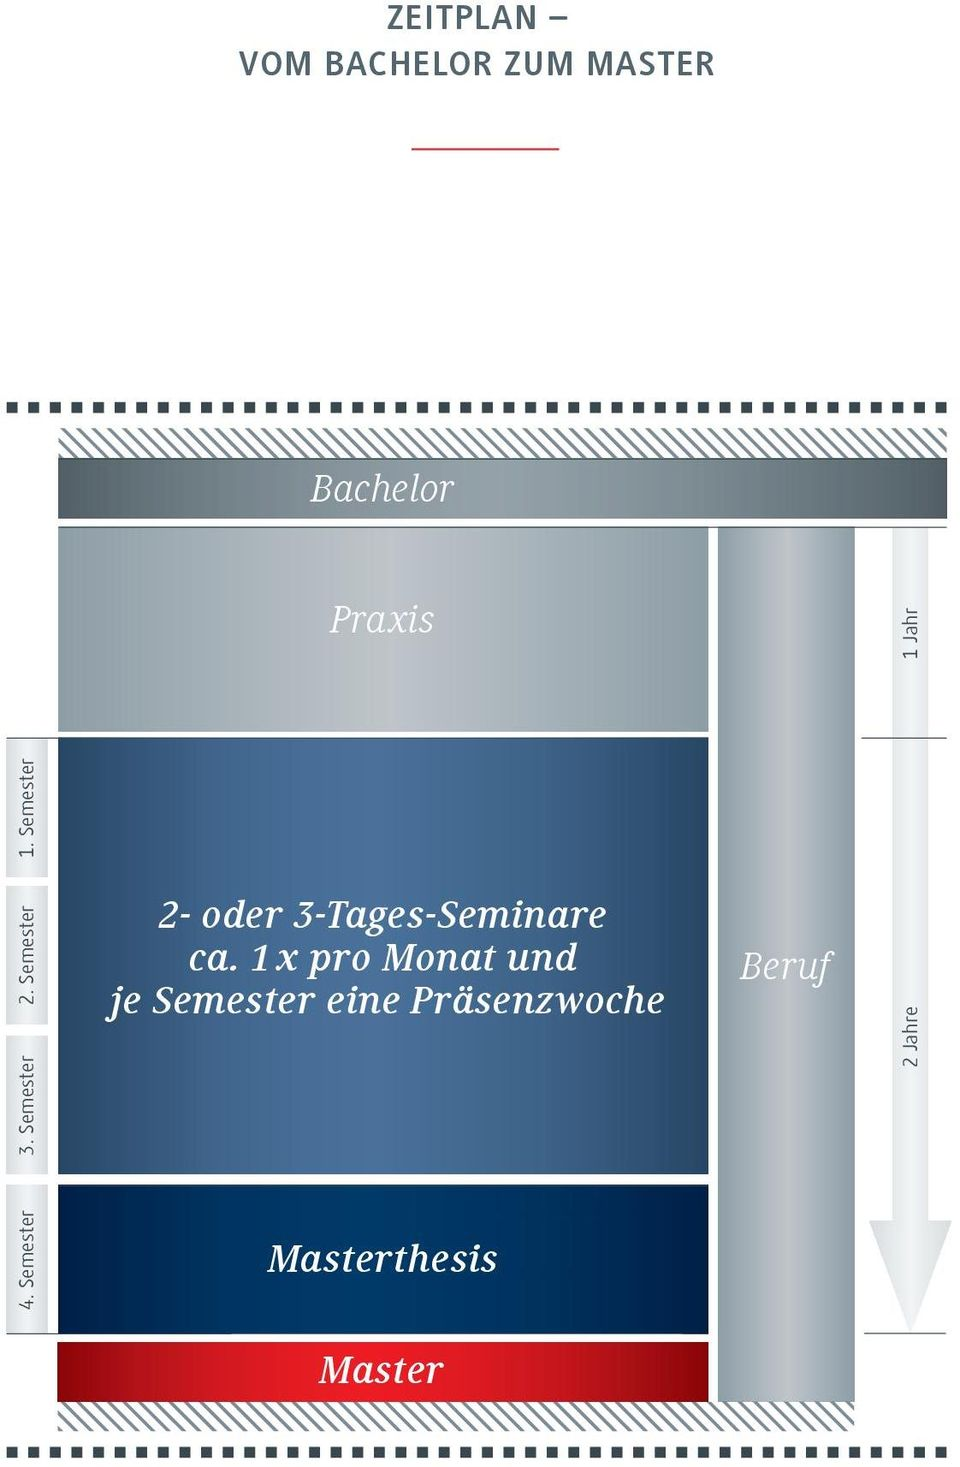 Semester 2- oder 3-Tages-Seminare ca.